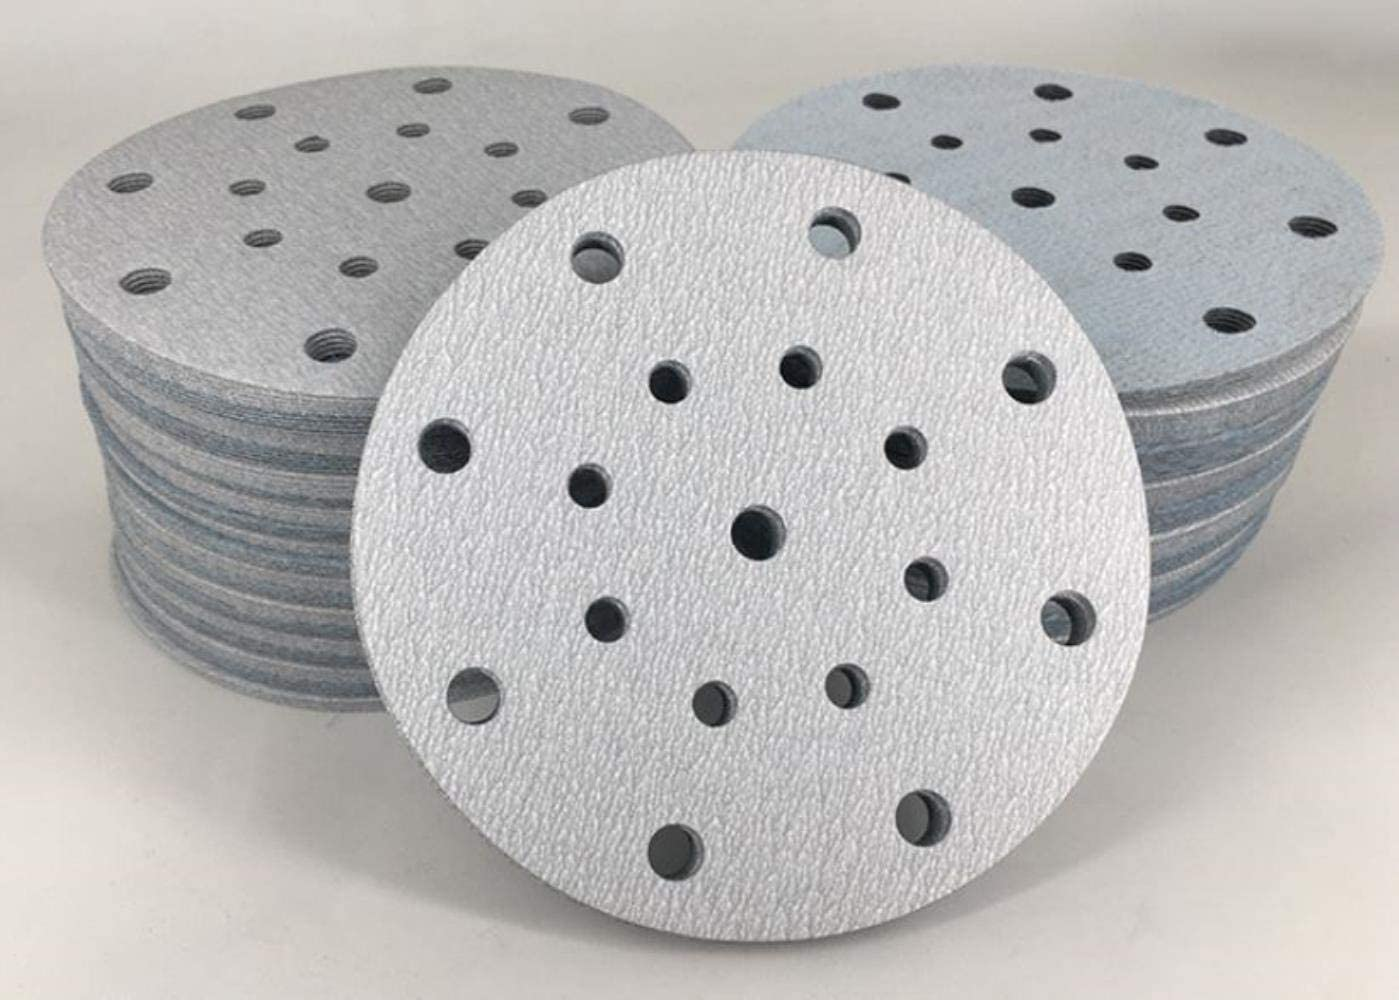 100pcs 6 Inch 17 Holes 150mm Round Sandpaper Disk Sand Sheets Grit 60-1000 Grinding Disc Polish Sand Sheets,80 1000